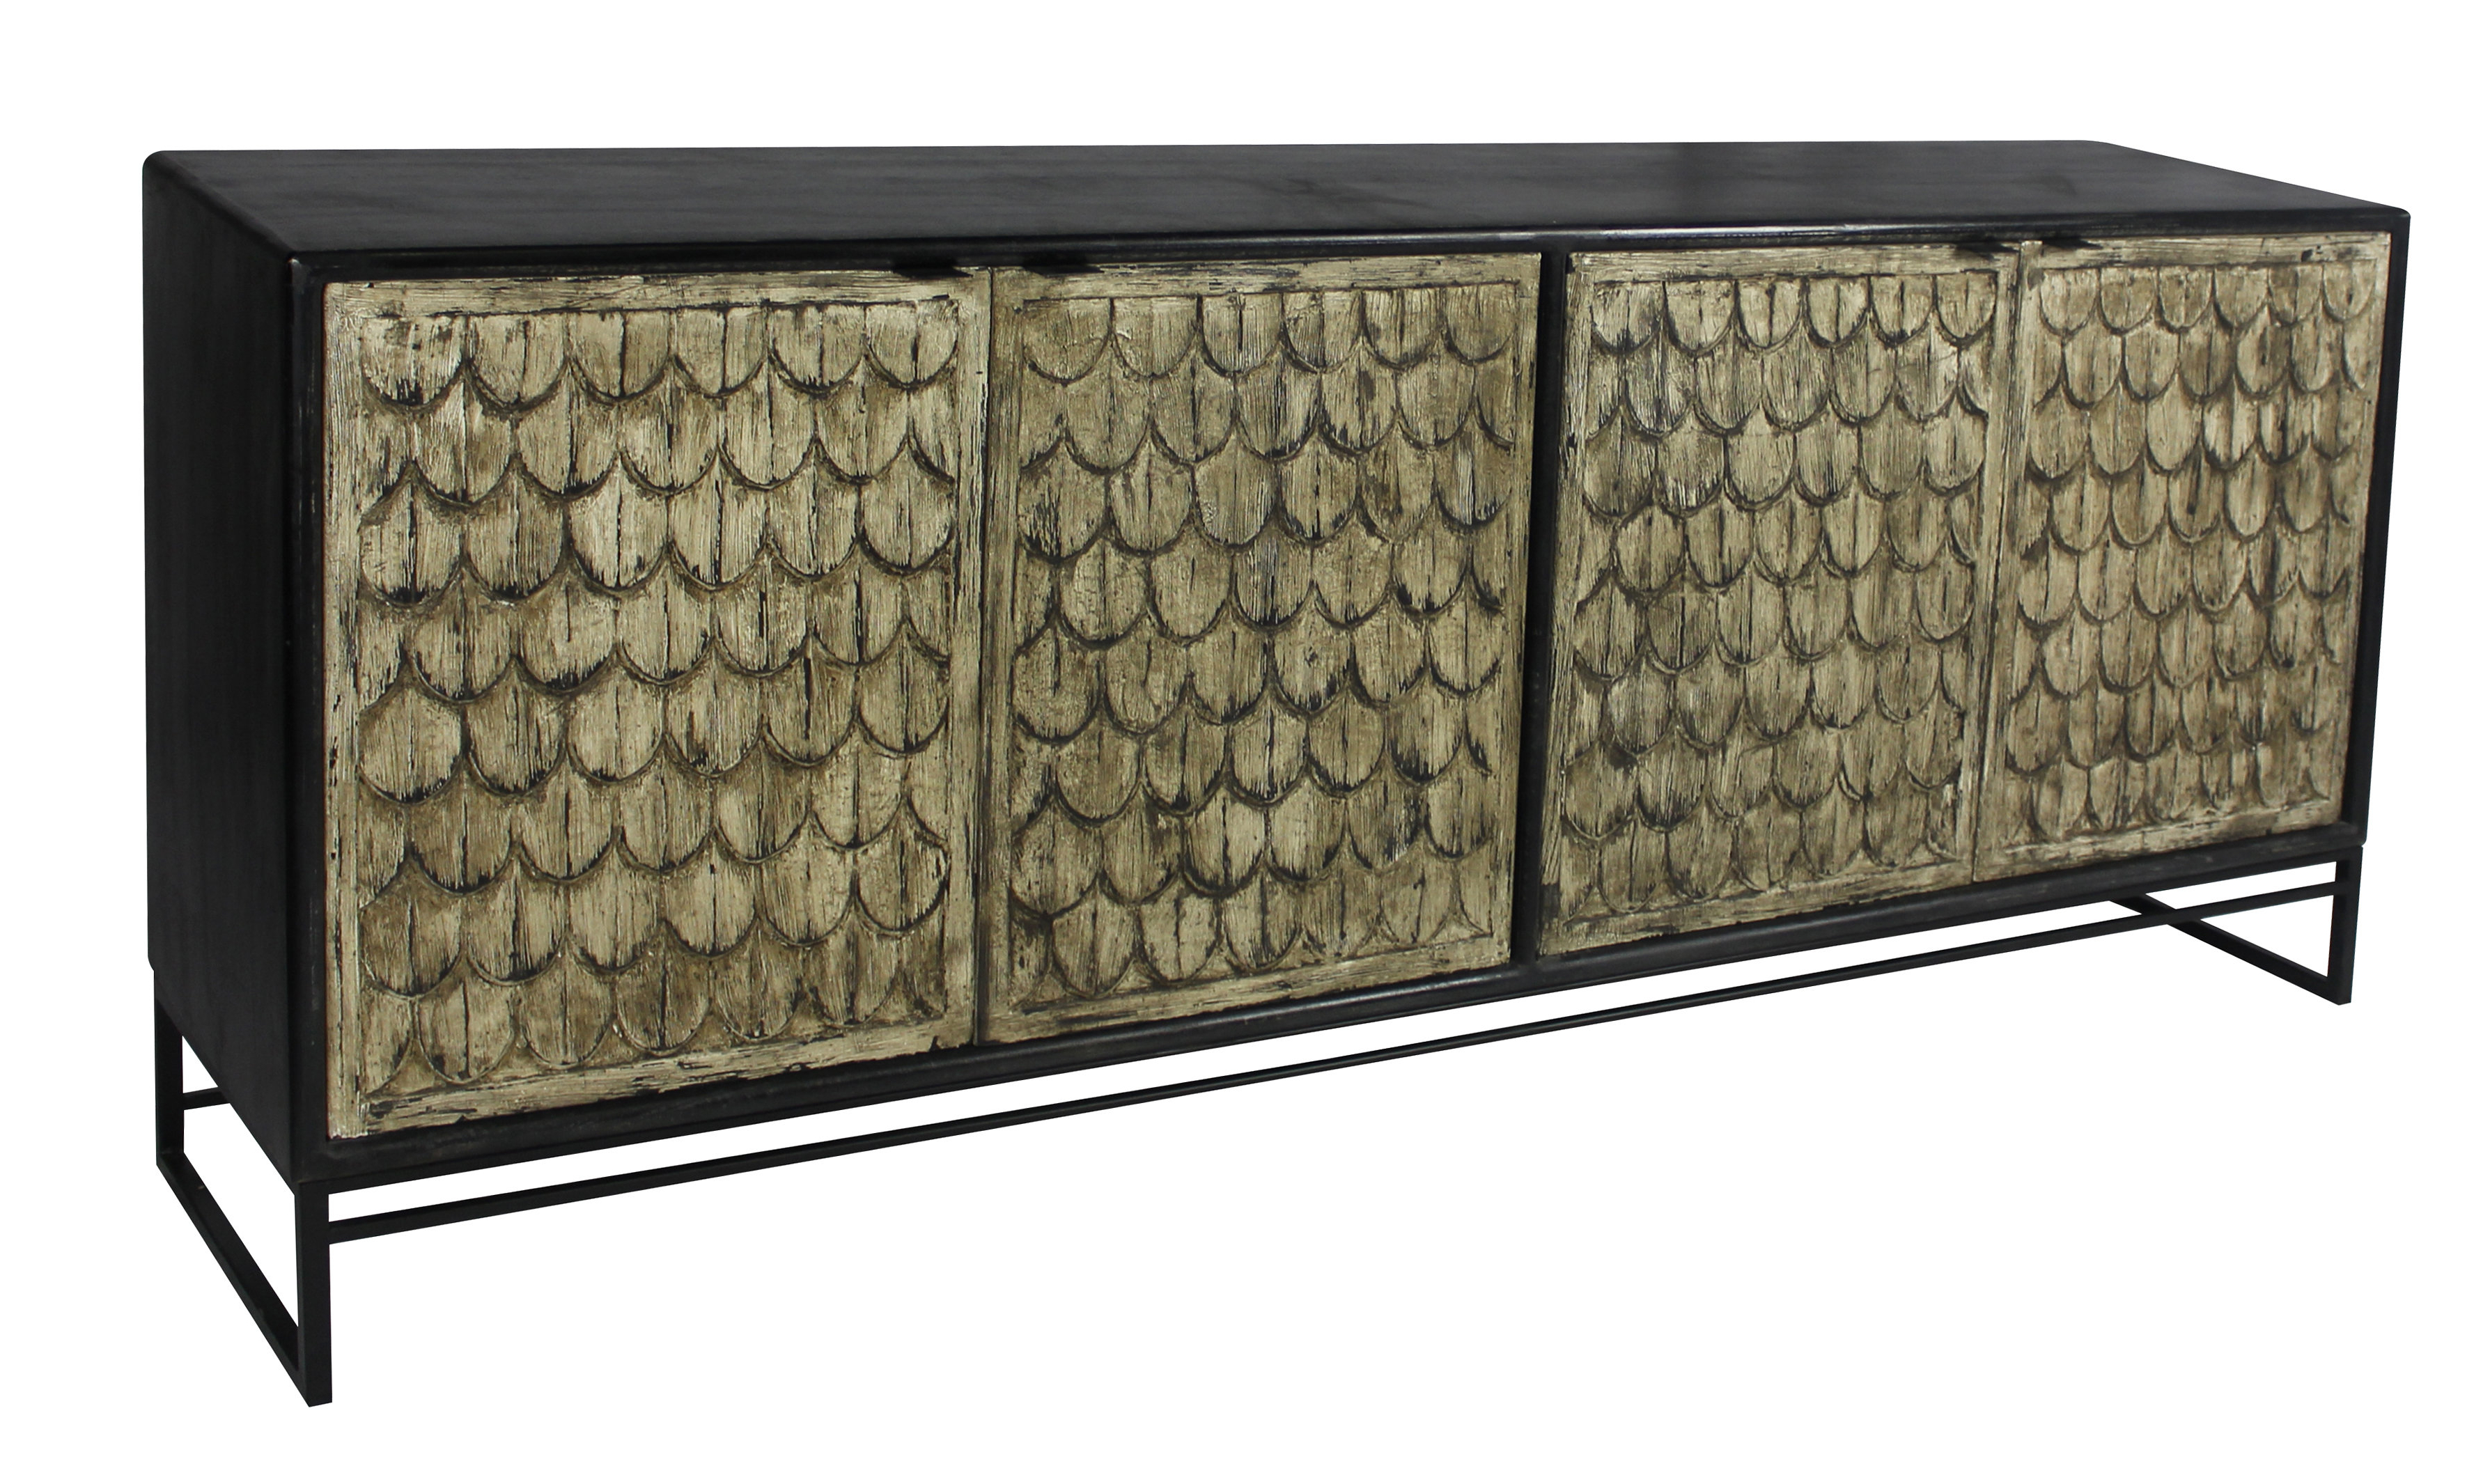 Keith 4 Door Credenza | Wayfair Throughout Kieth 4 Door Credenzas (View 4 of 20)